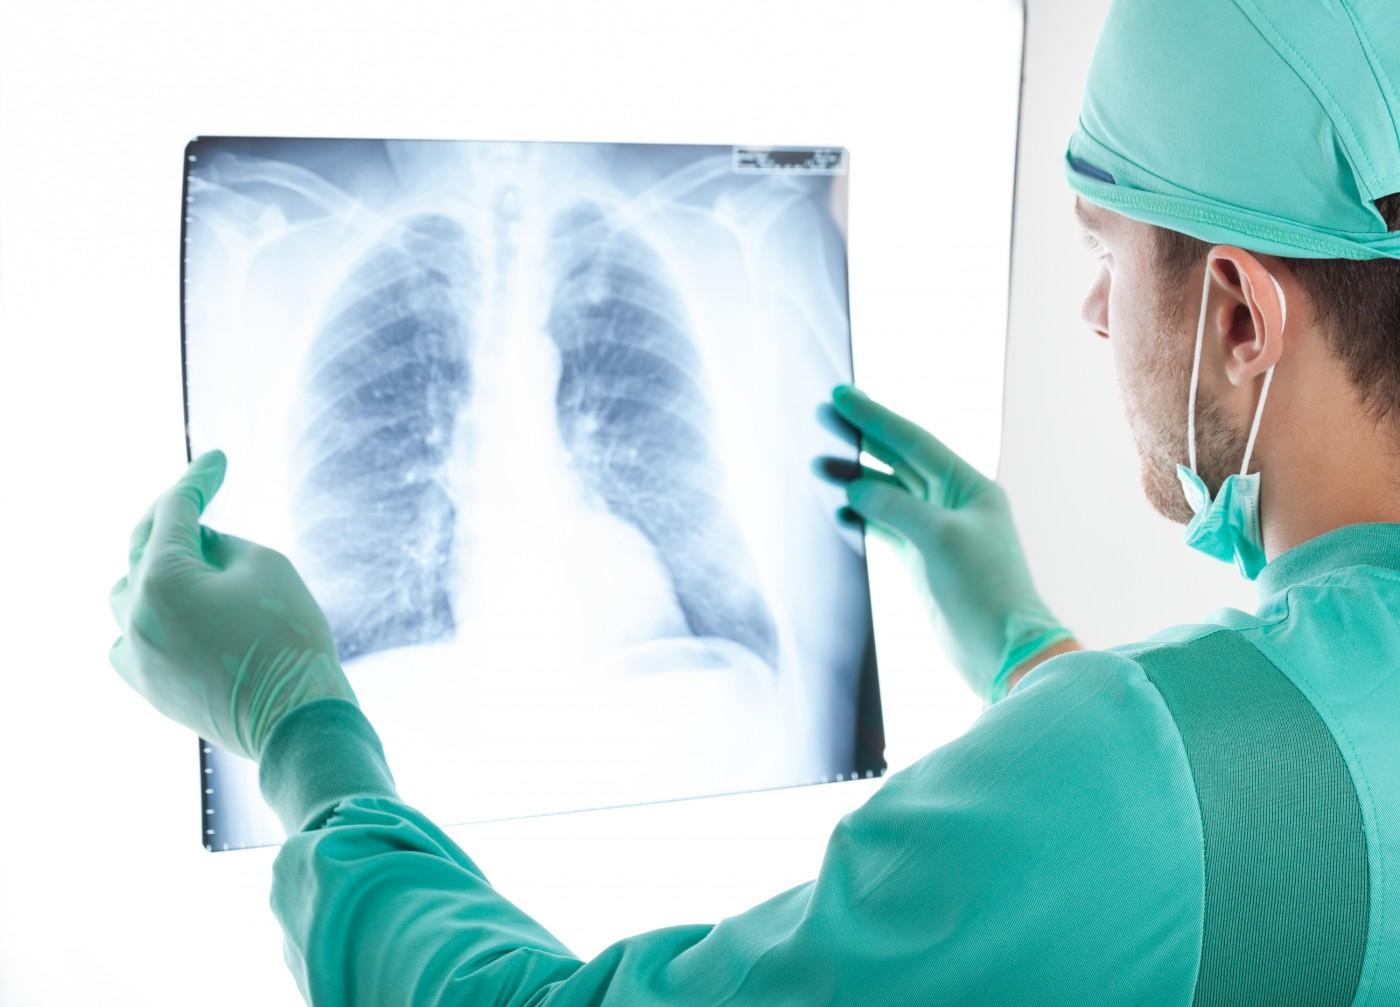 Surgical Choice for NSCLC Patients Depends on Surgeon Experience